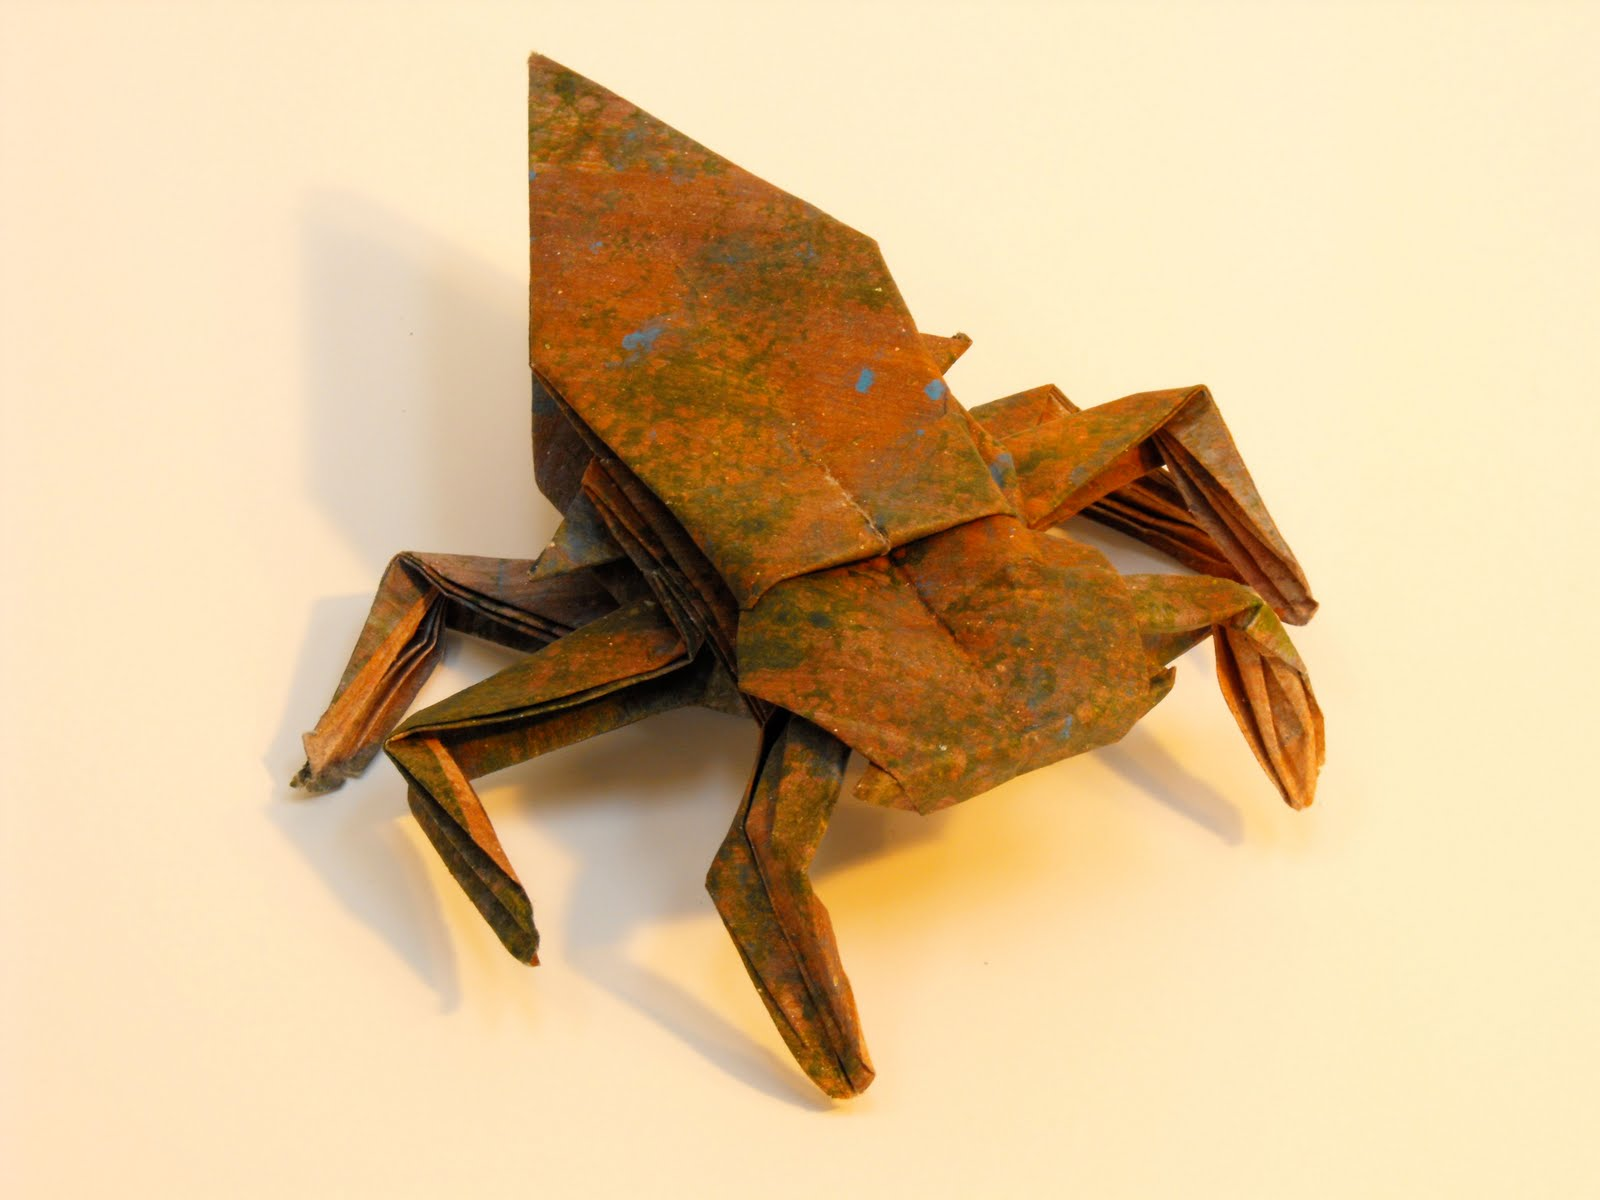 origami gissendanner: Origami Insects and Such - photo#1